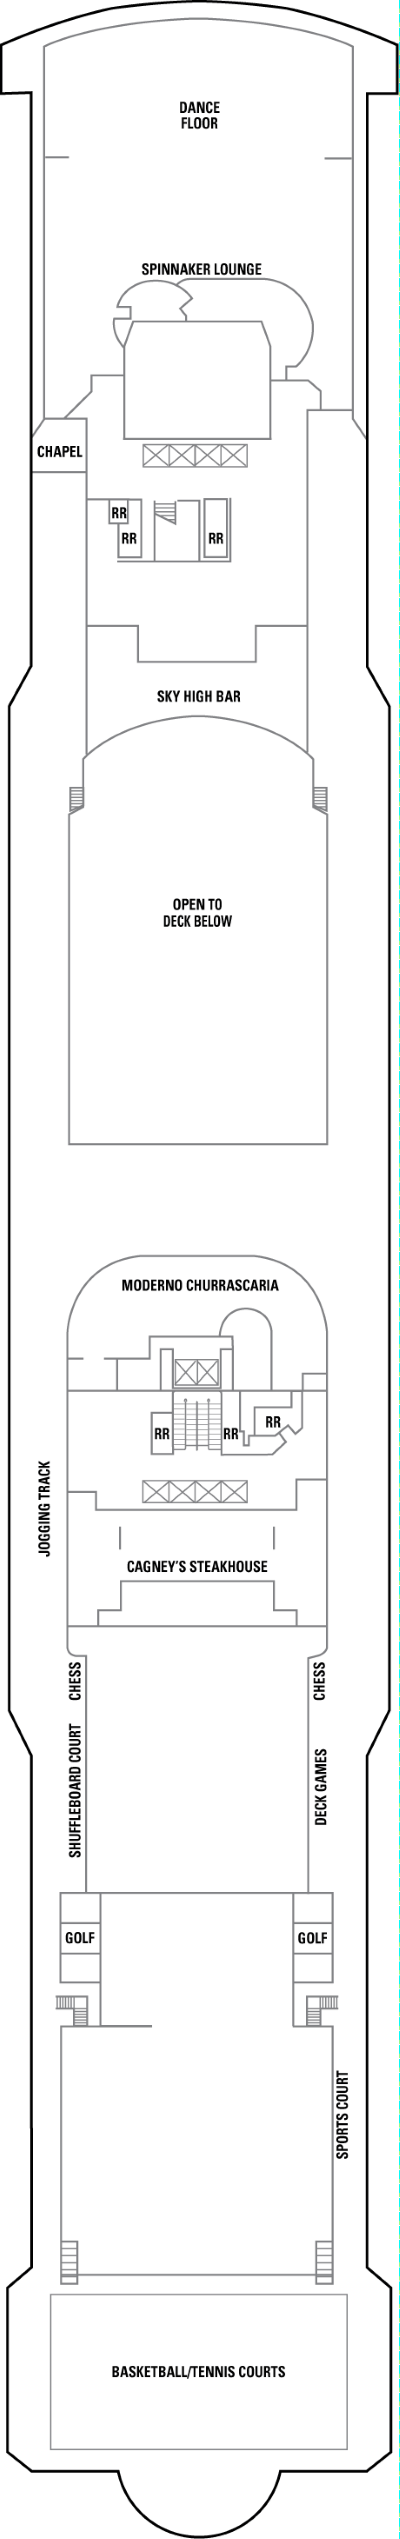 Norwegian Jewel Deck 13 layout